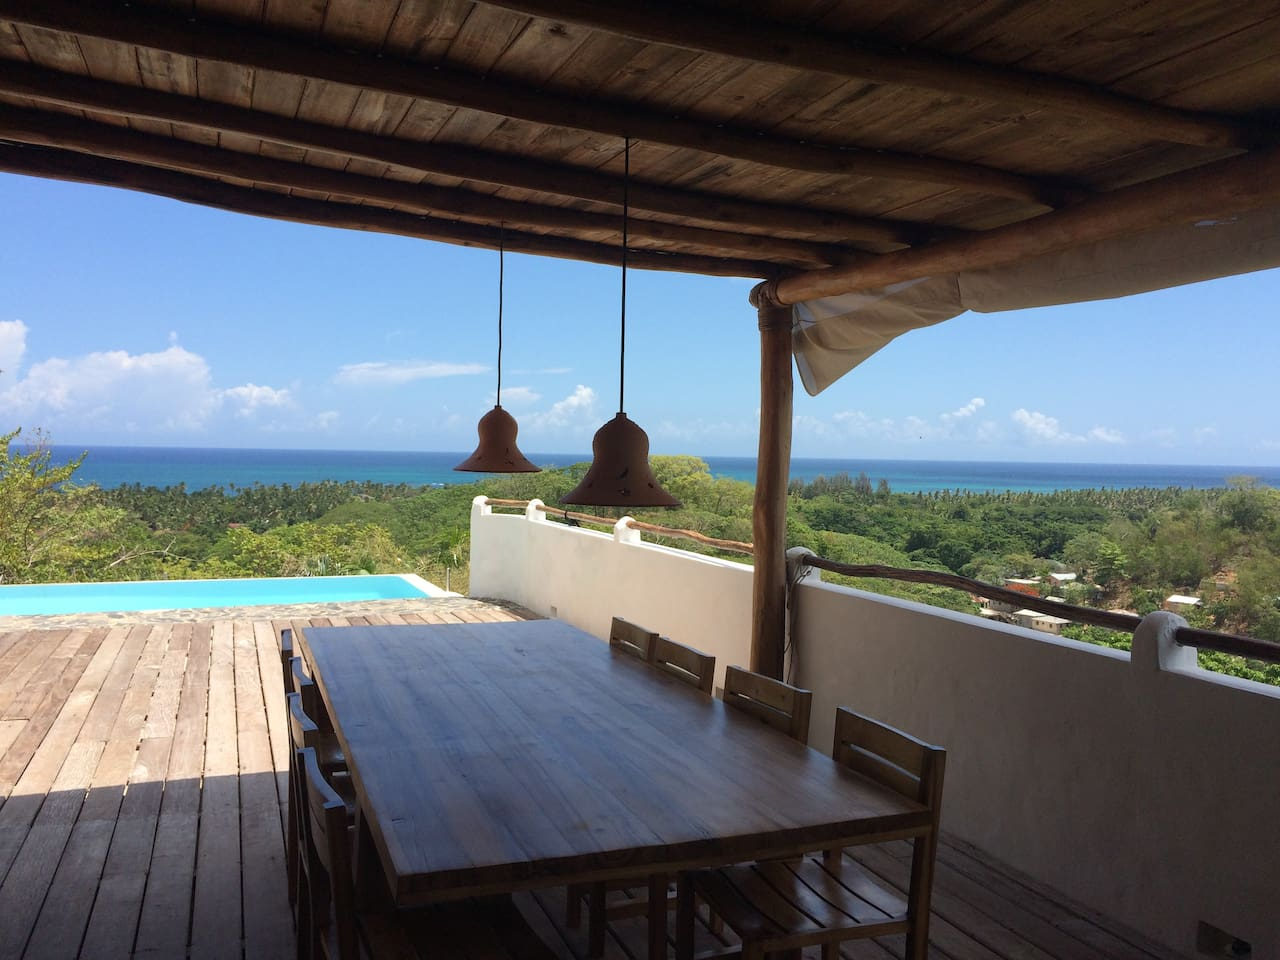 A big dinner table for friends and family with a beautiful view to the sea